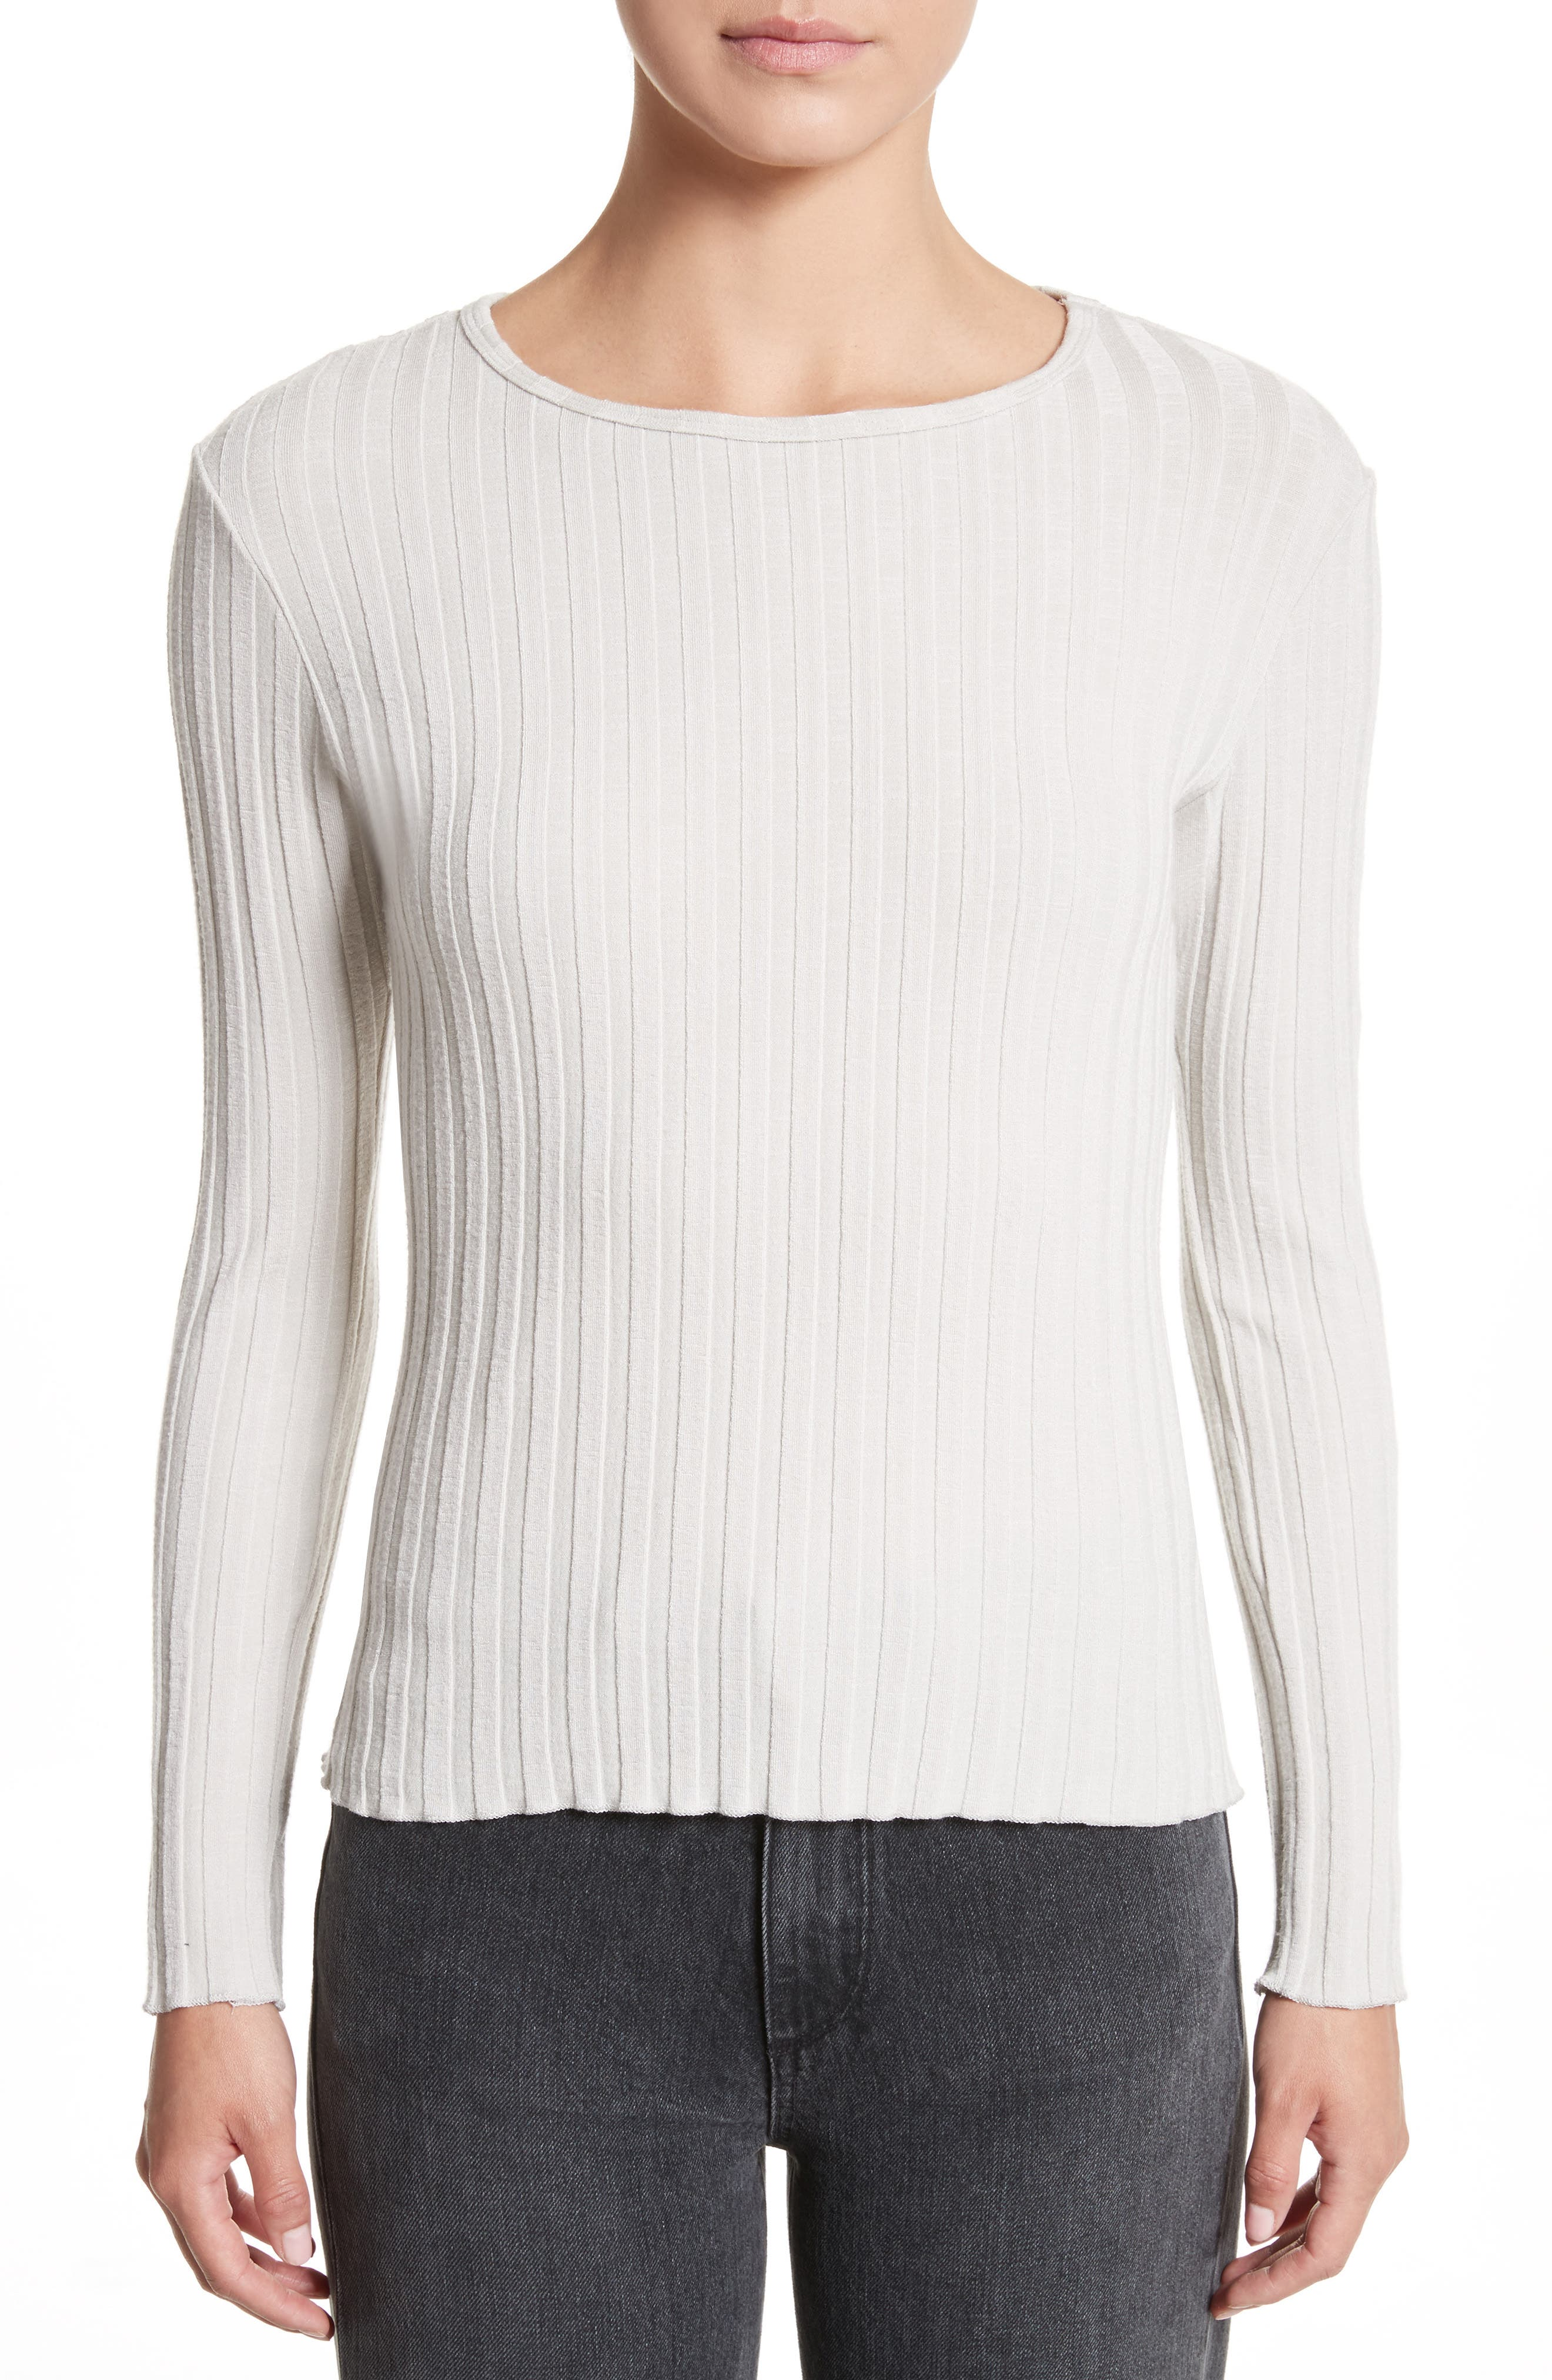 Alternate Image 1 Selected - Simon Miller Devola Rib Knit Tee